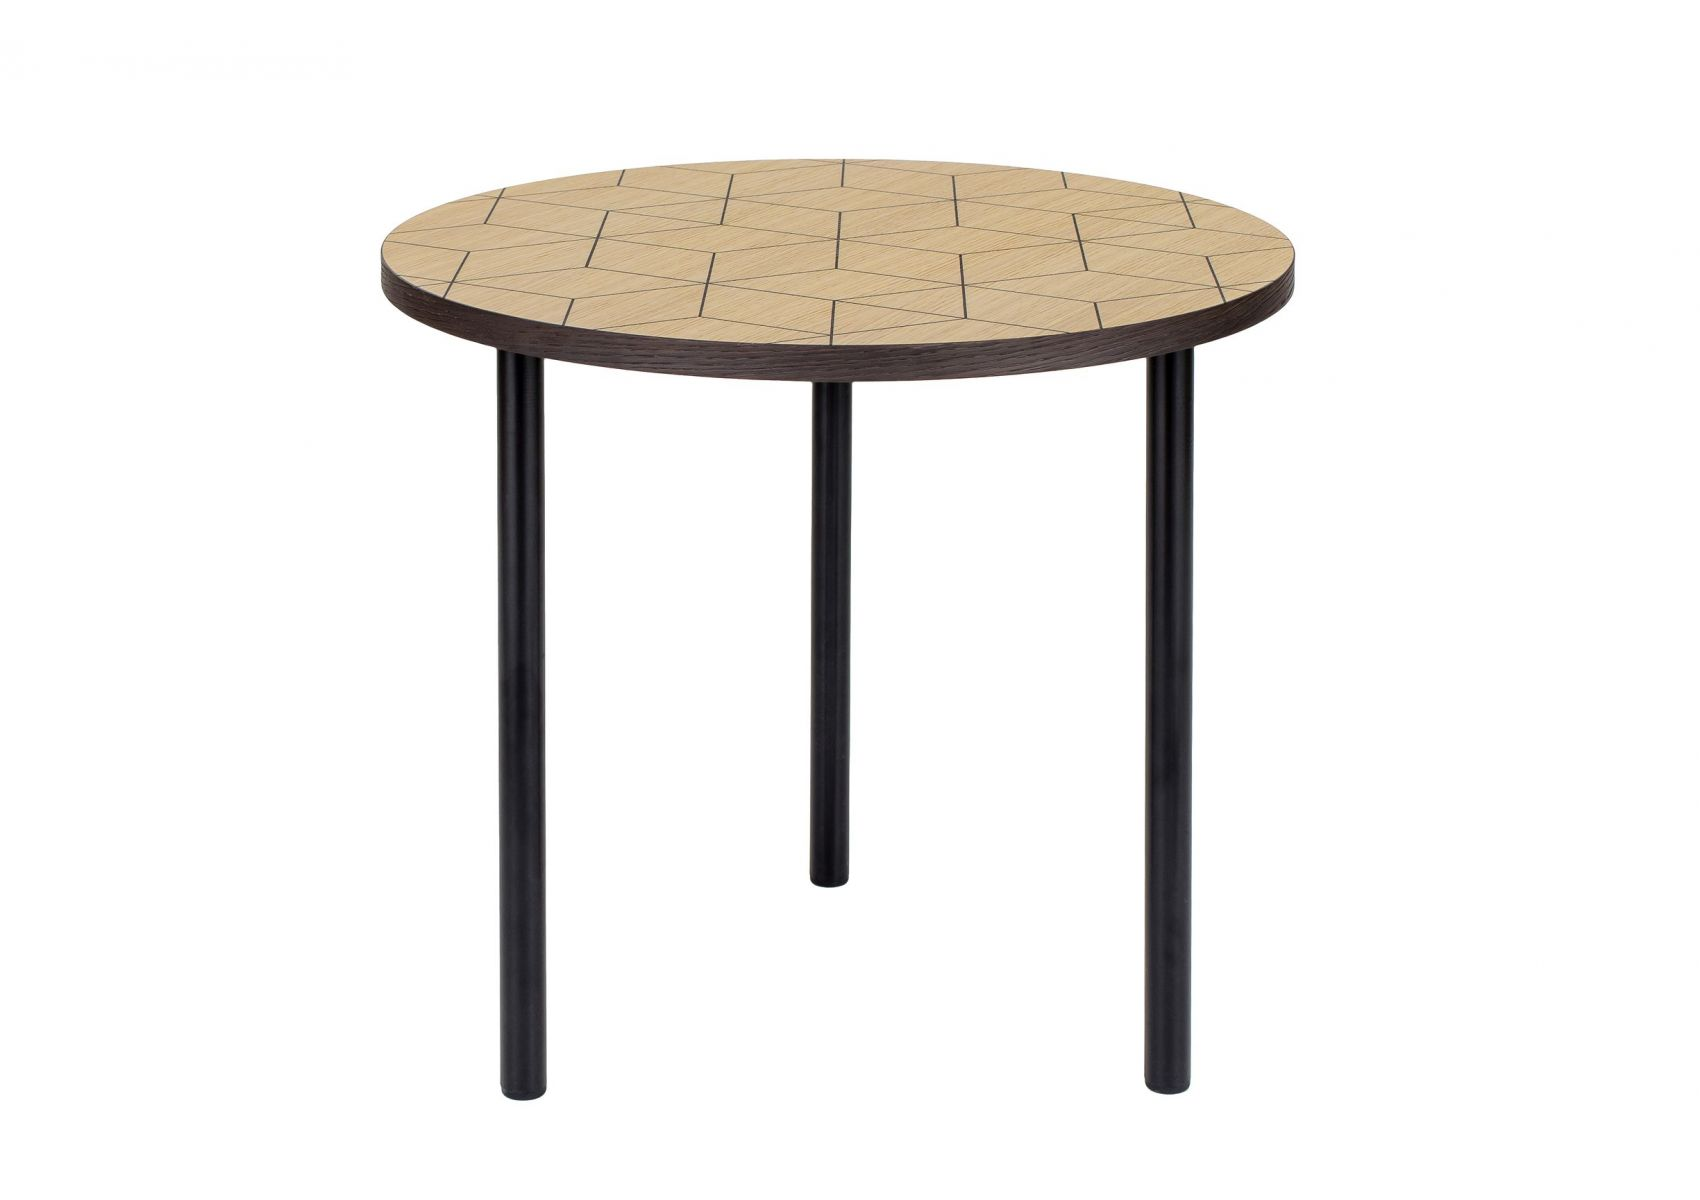 table d 39 appoint ronde avec motifs g om triques en 50 cm arty. Black Bedroom Furniture Sets. Home Design Ideas